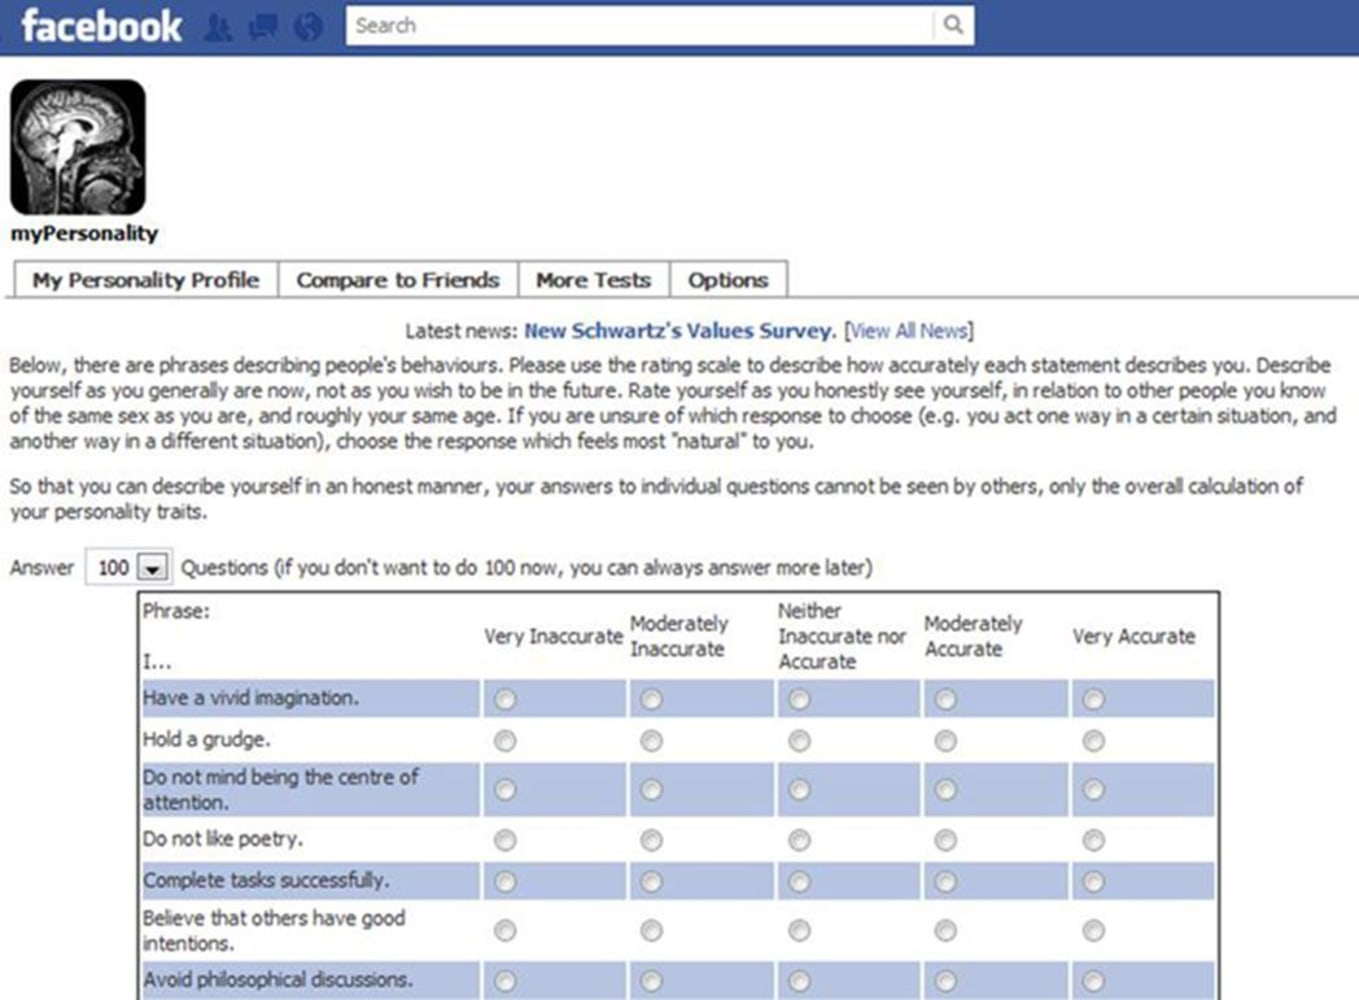 like this can facebook assess your personality nbc news image researchers used this app on facebook to see whether a computer could figure out